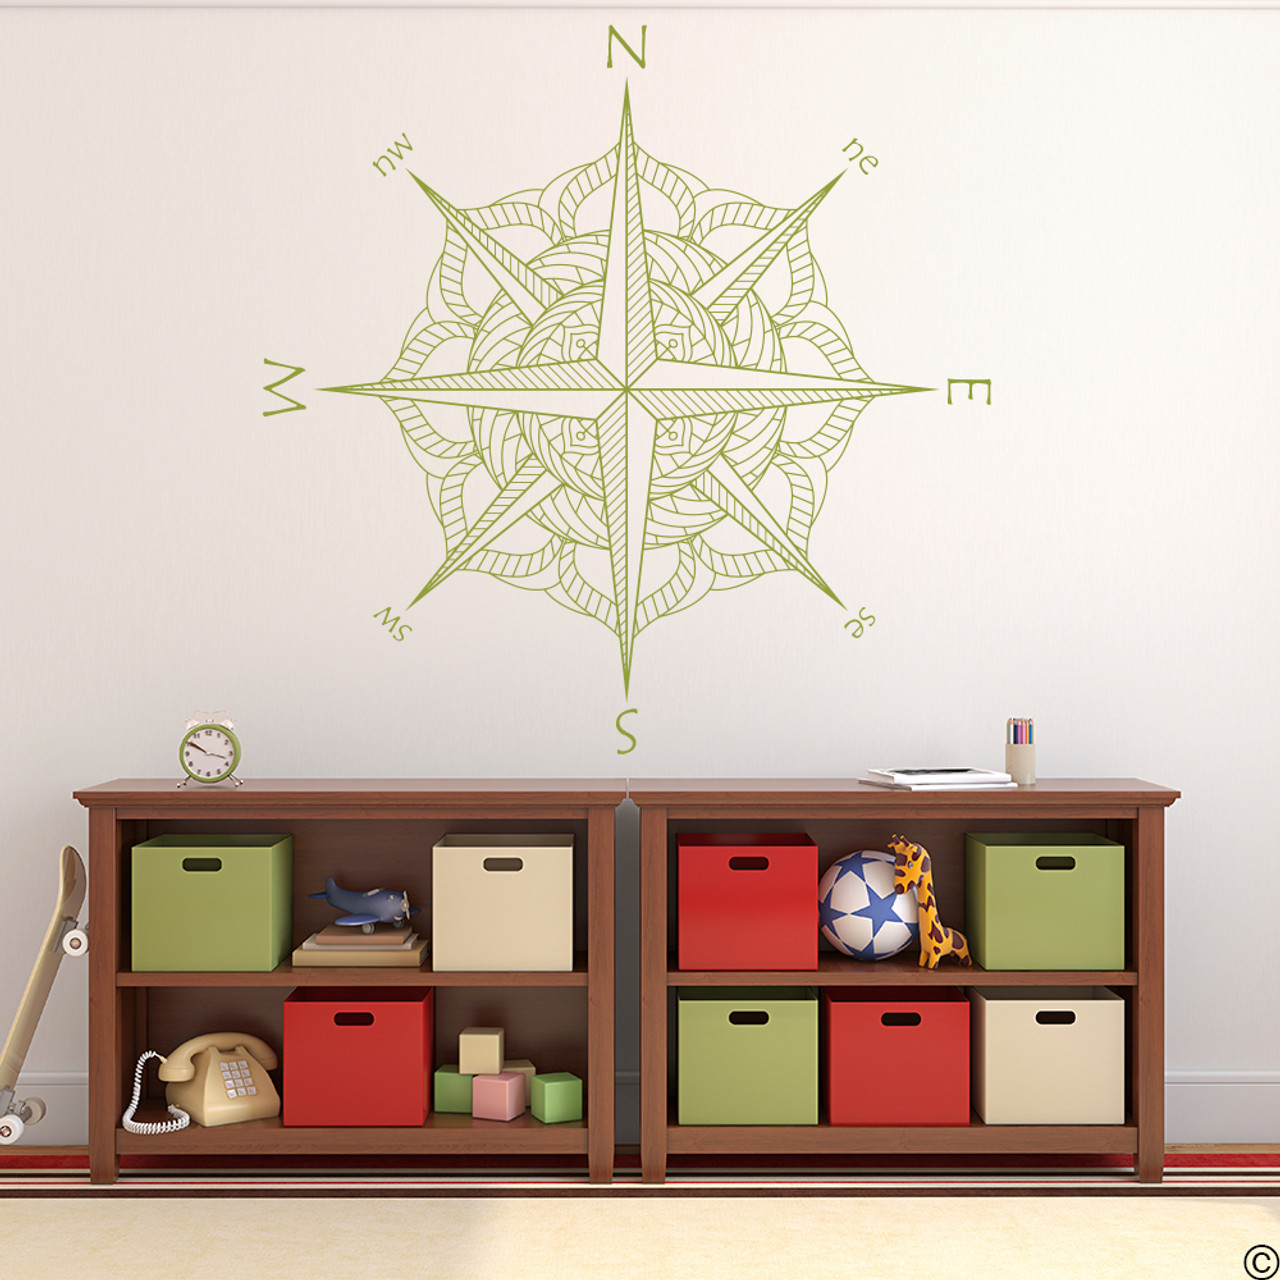 The Catalina compass rose wall or ceiling decal in olive